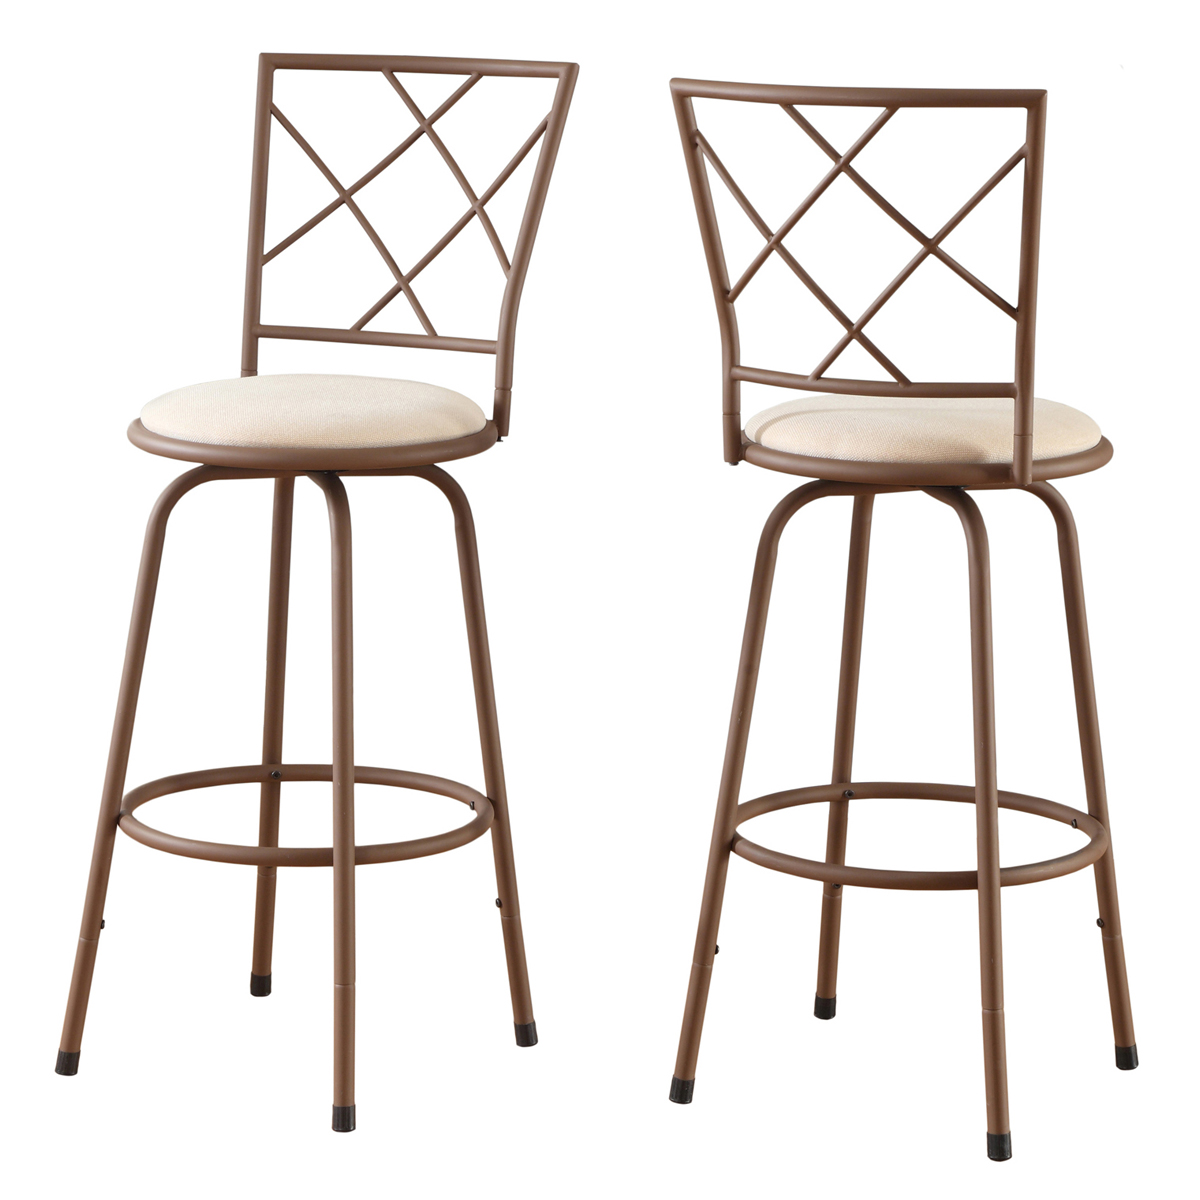 2 Piece Swivel Barstool Set with Brown Metal Frame and Beige Fabric Seat